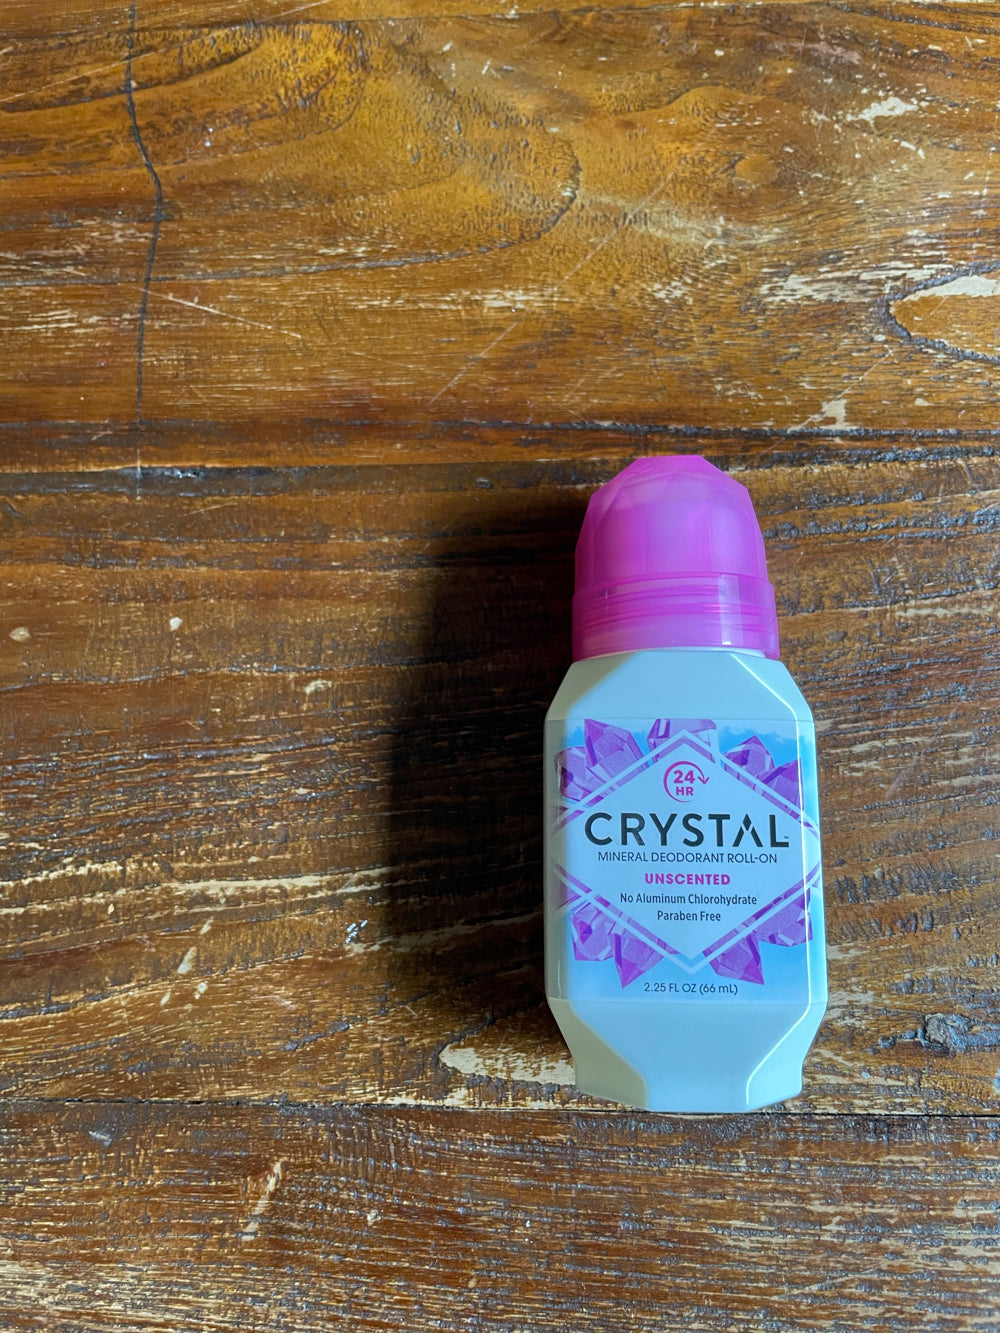 [Template Yoga SIte] Others: Crystal Deodorant